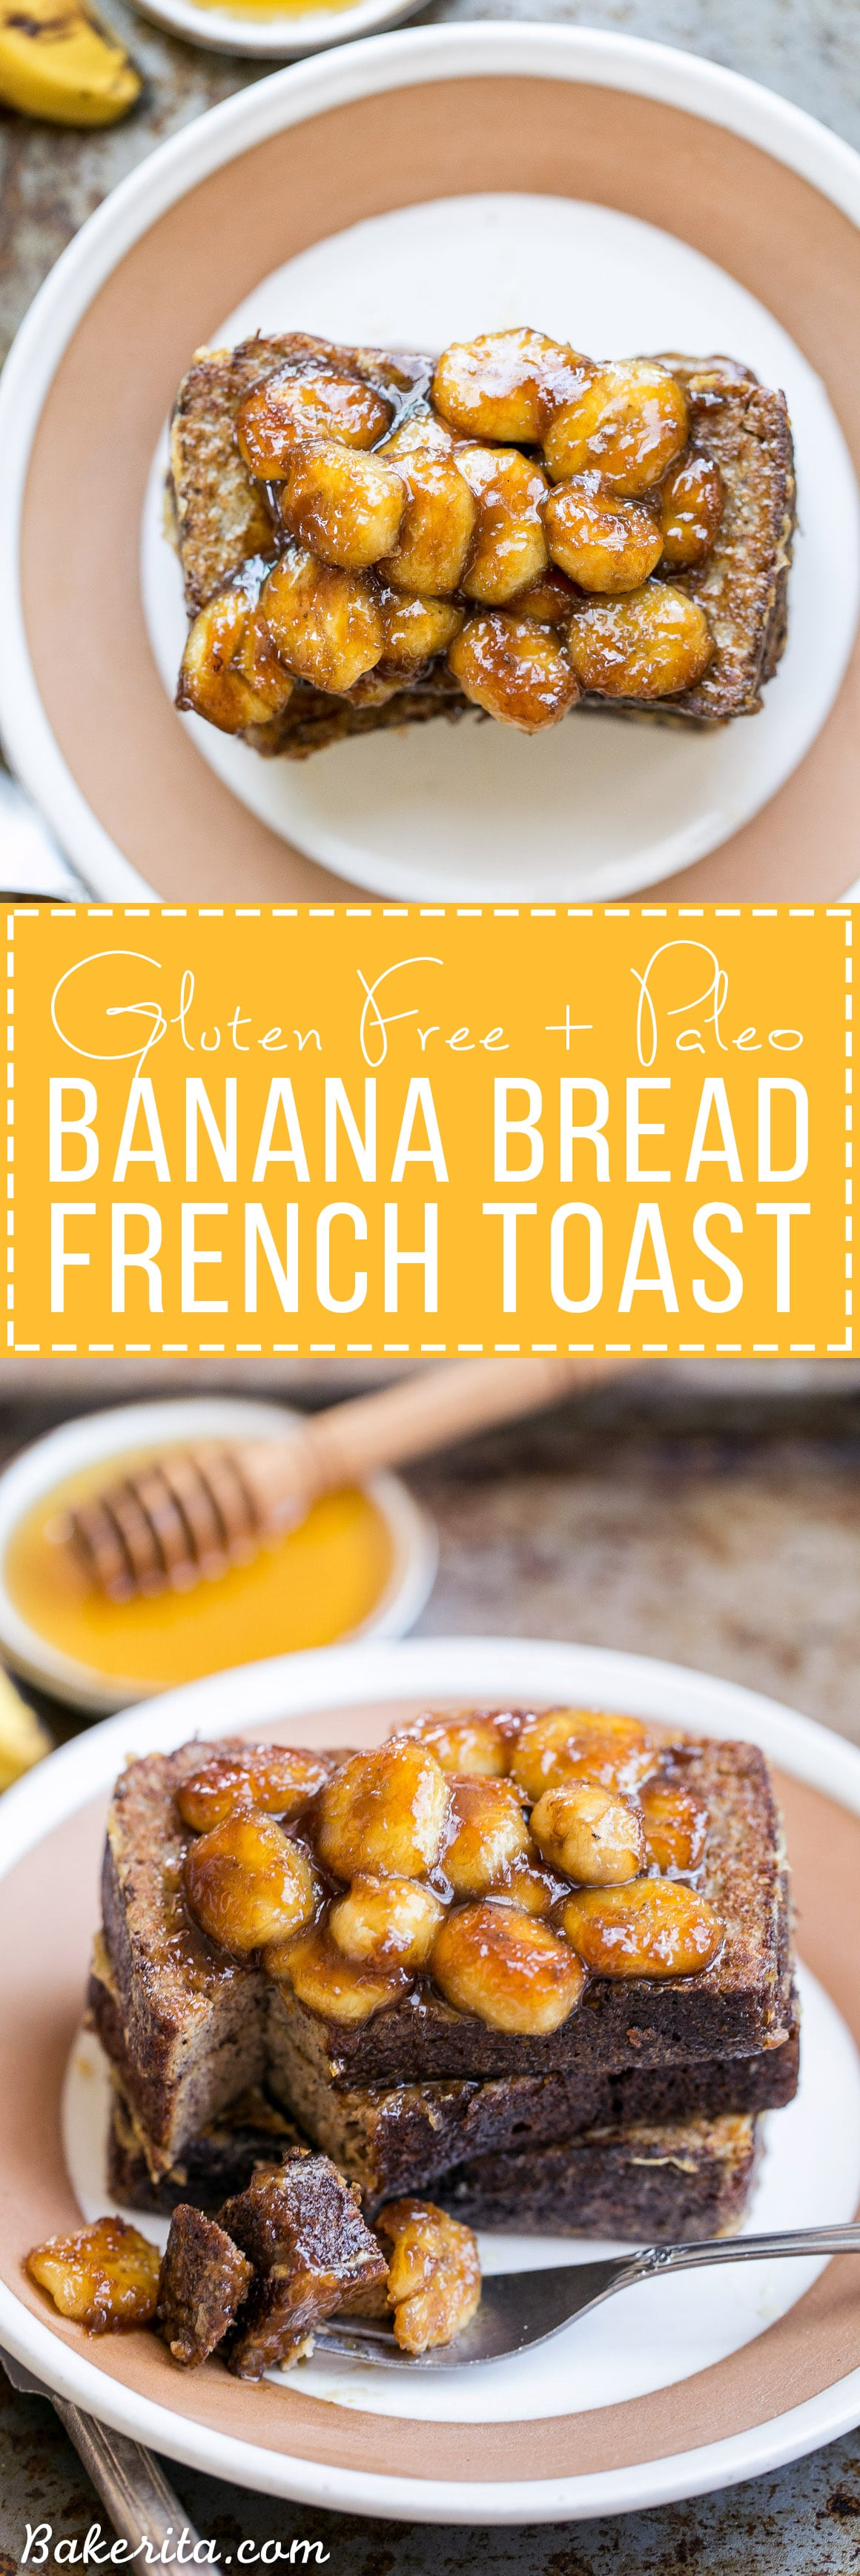 Banana bread french toast with caramelized bananas gluten free this banana bread french toast is topped with caramelized bananas for a banana lovers delight forumfinder Image collections